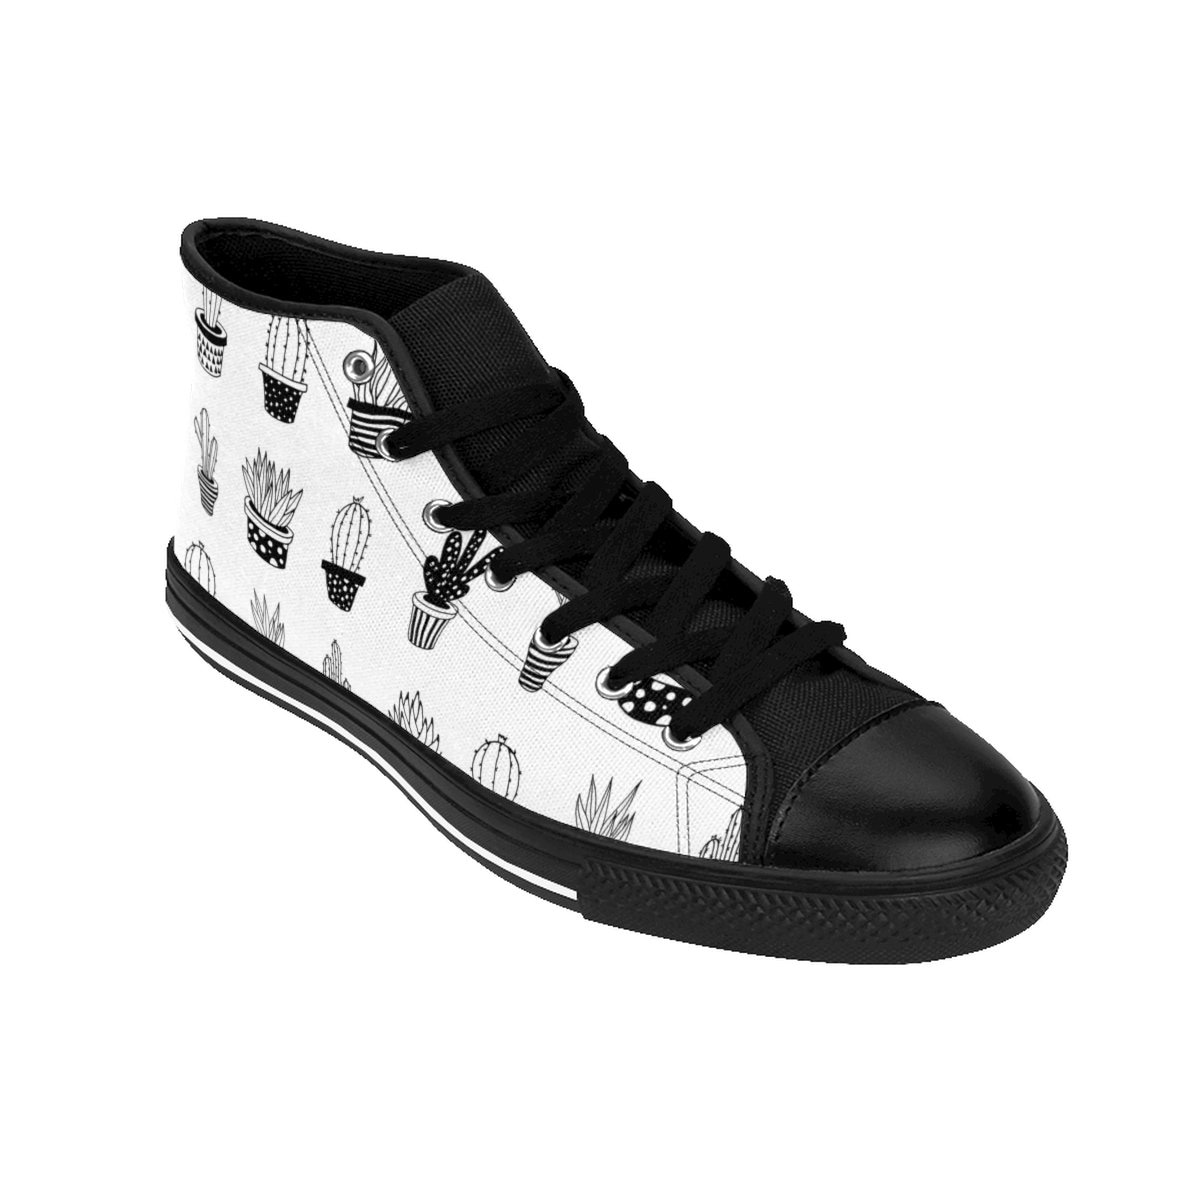 BW Cactus WoHommes S HighTop baskets chaussures femme Cool chaussures chaussures chaussures cadeau pour femme cadeau de Noël pour femme NoirBlanc Cactus chaussures b60cb0